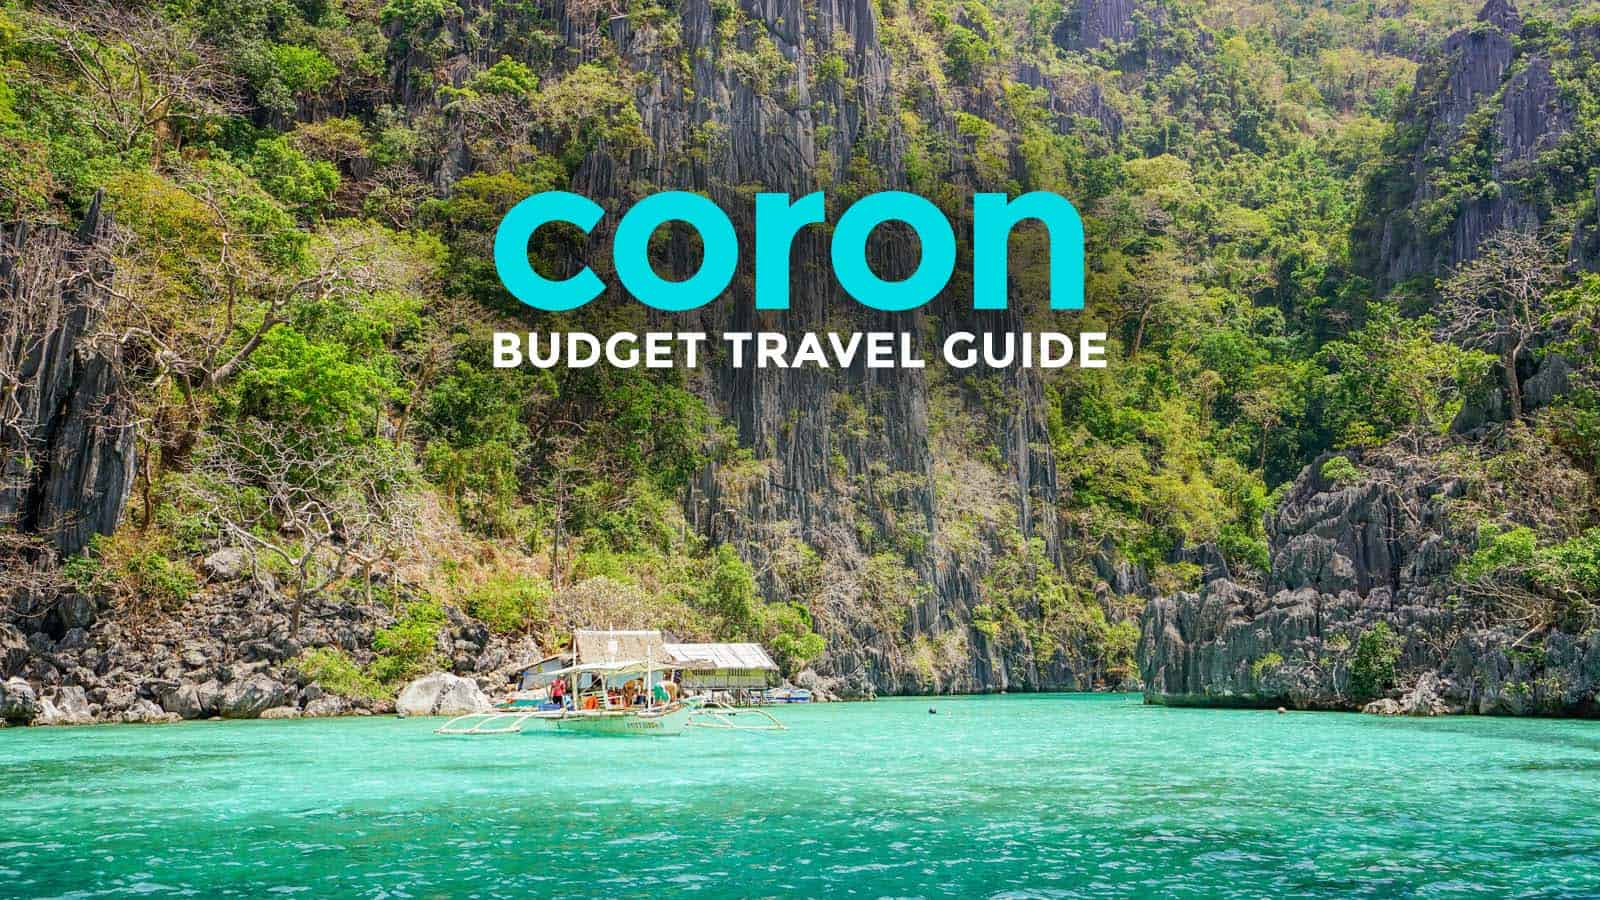 CORON PALAWAN TRAVEL GUIDE with Budget Itinerary